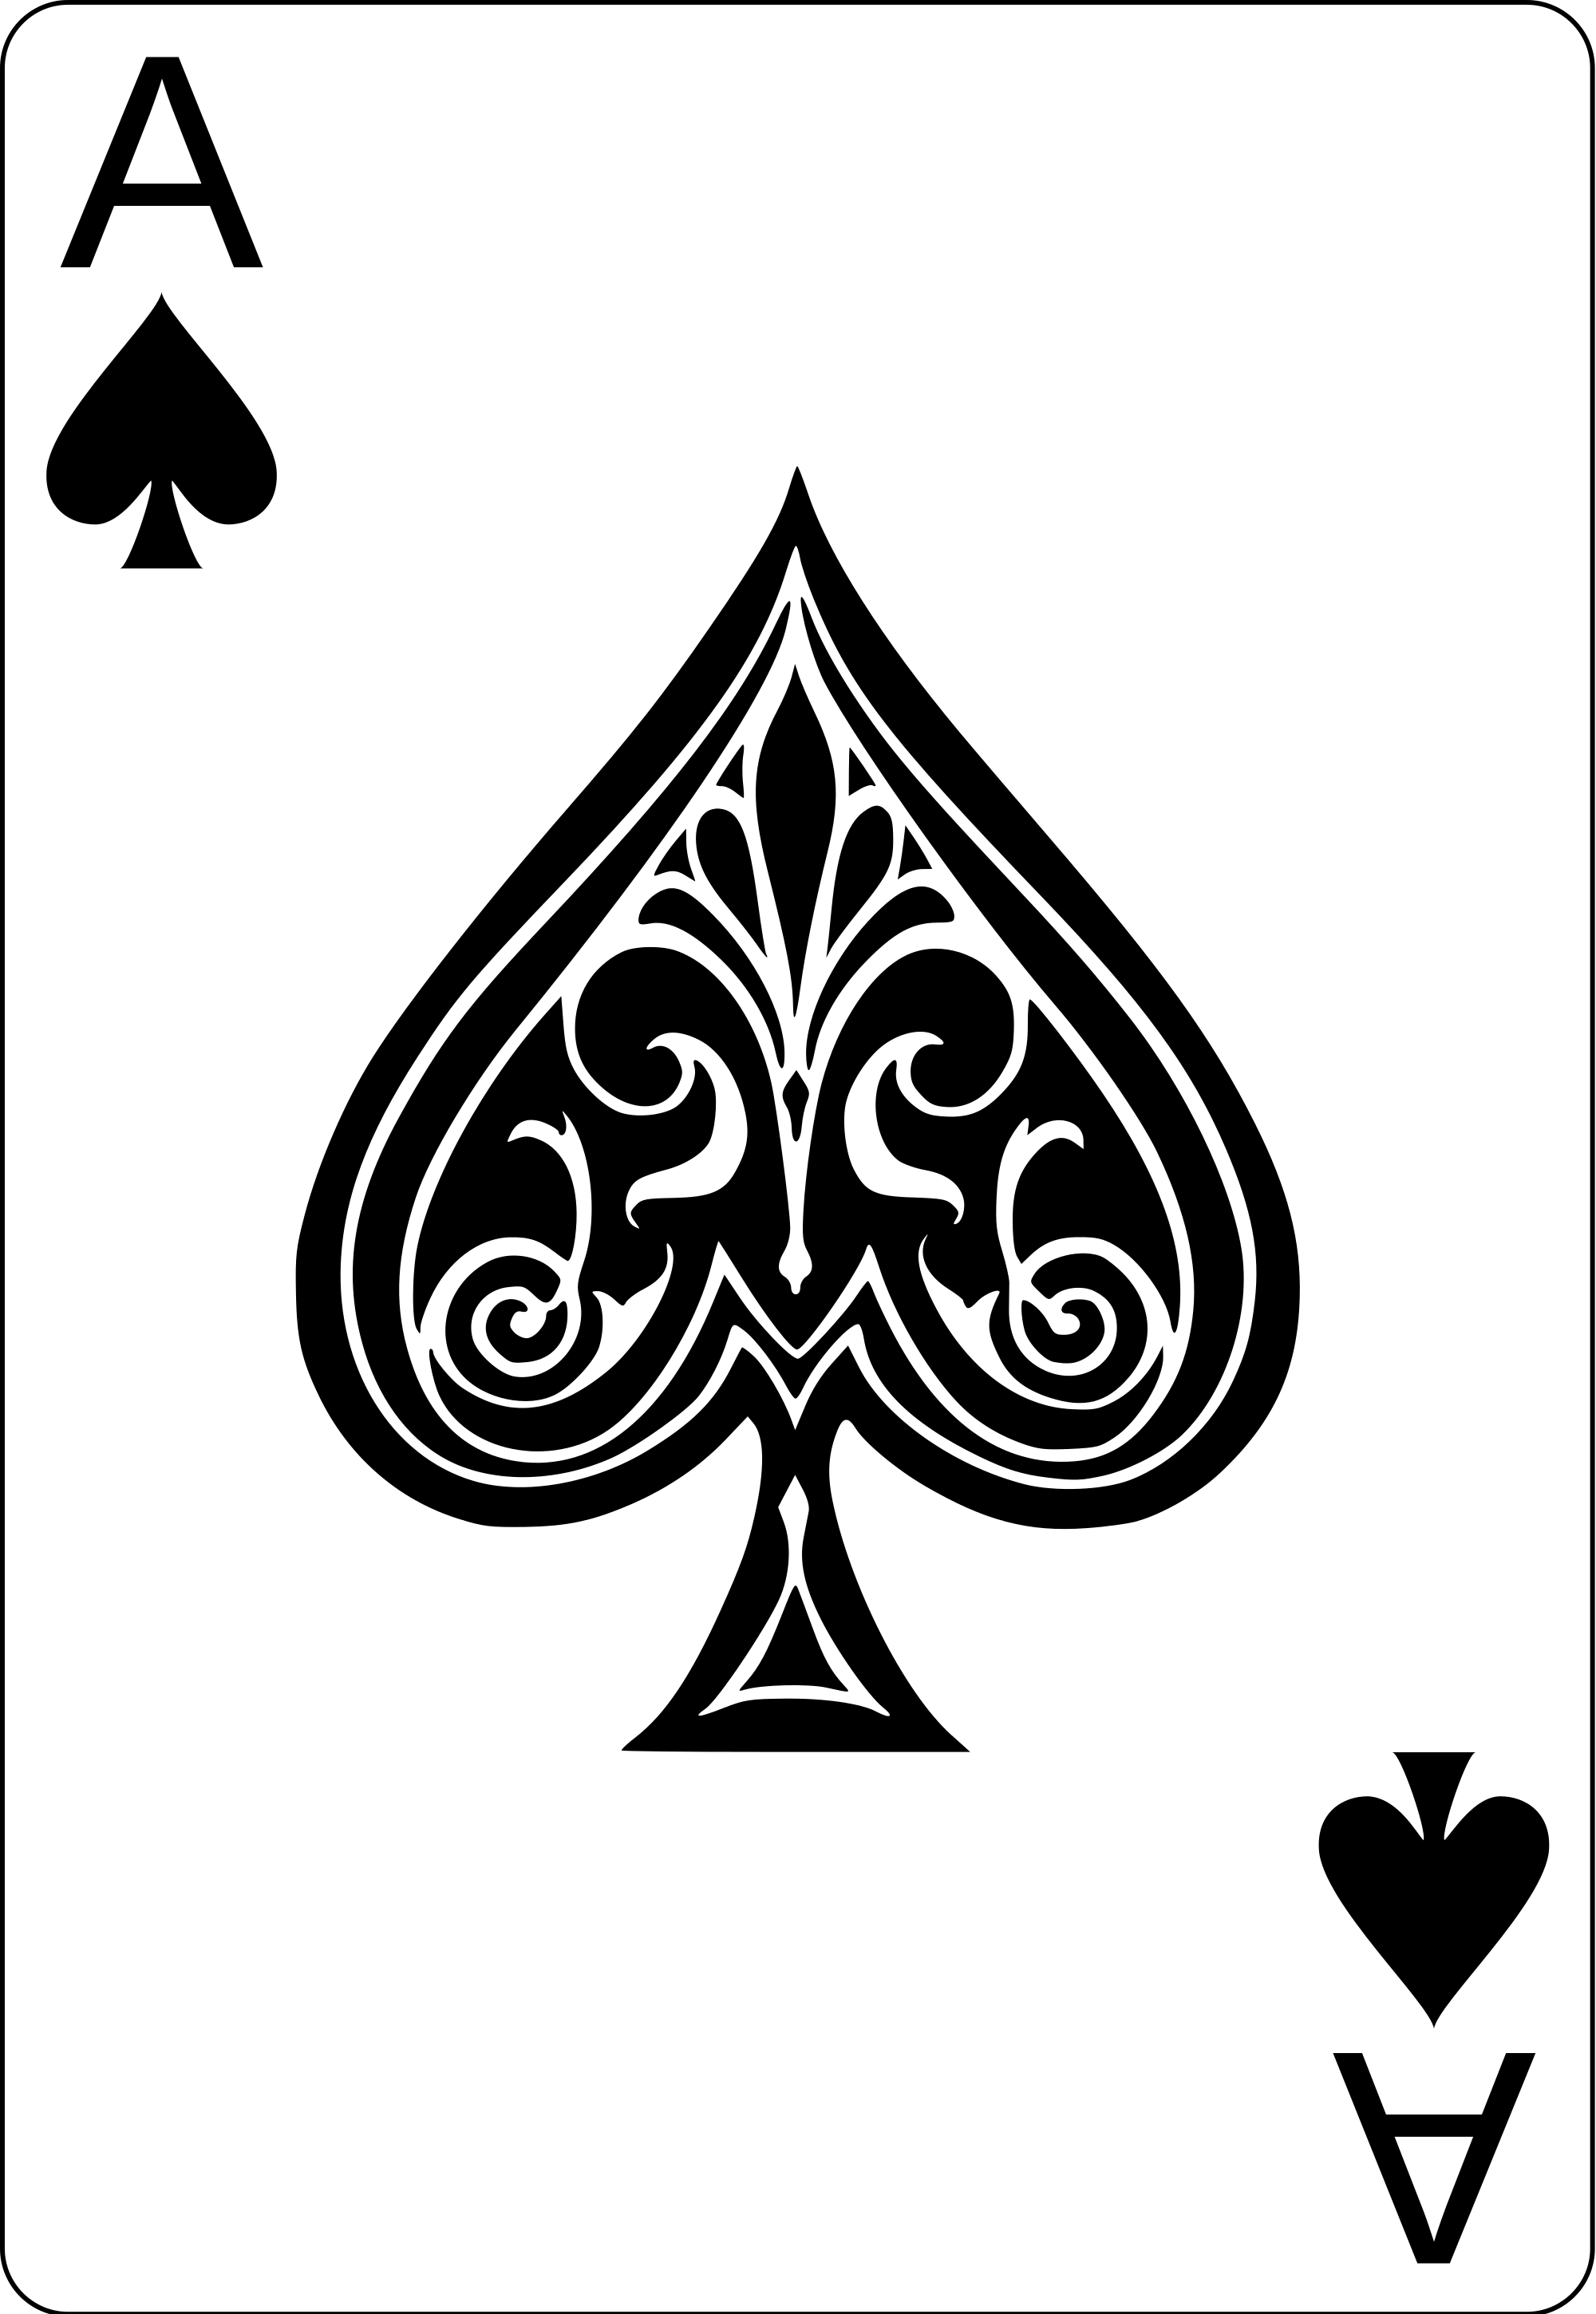 Ace Card PNG - 25977